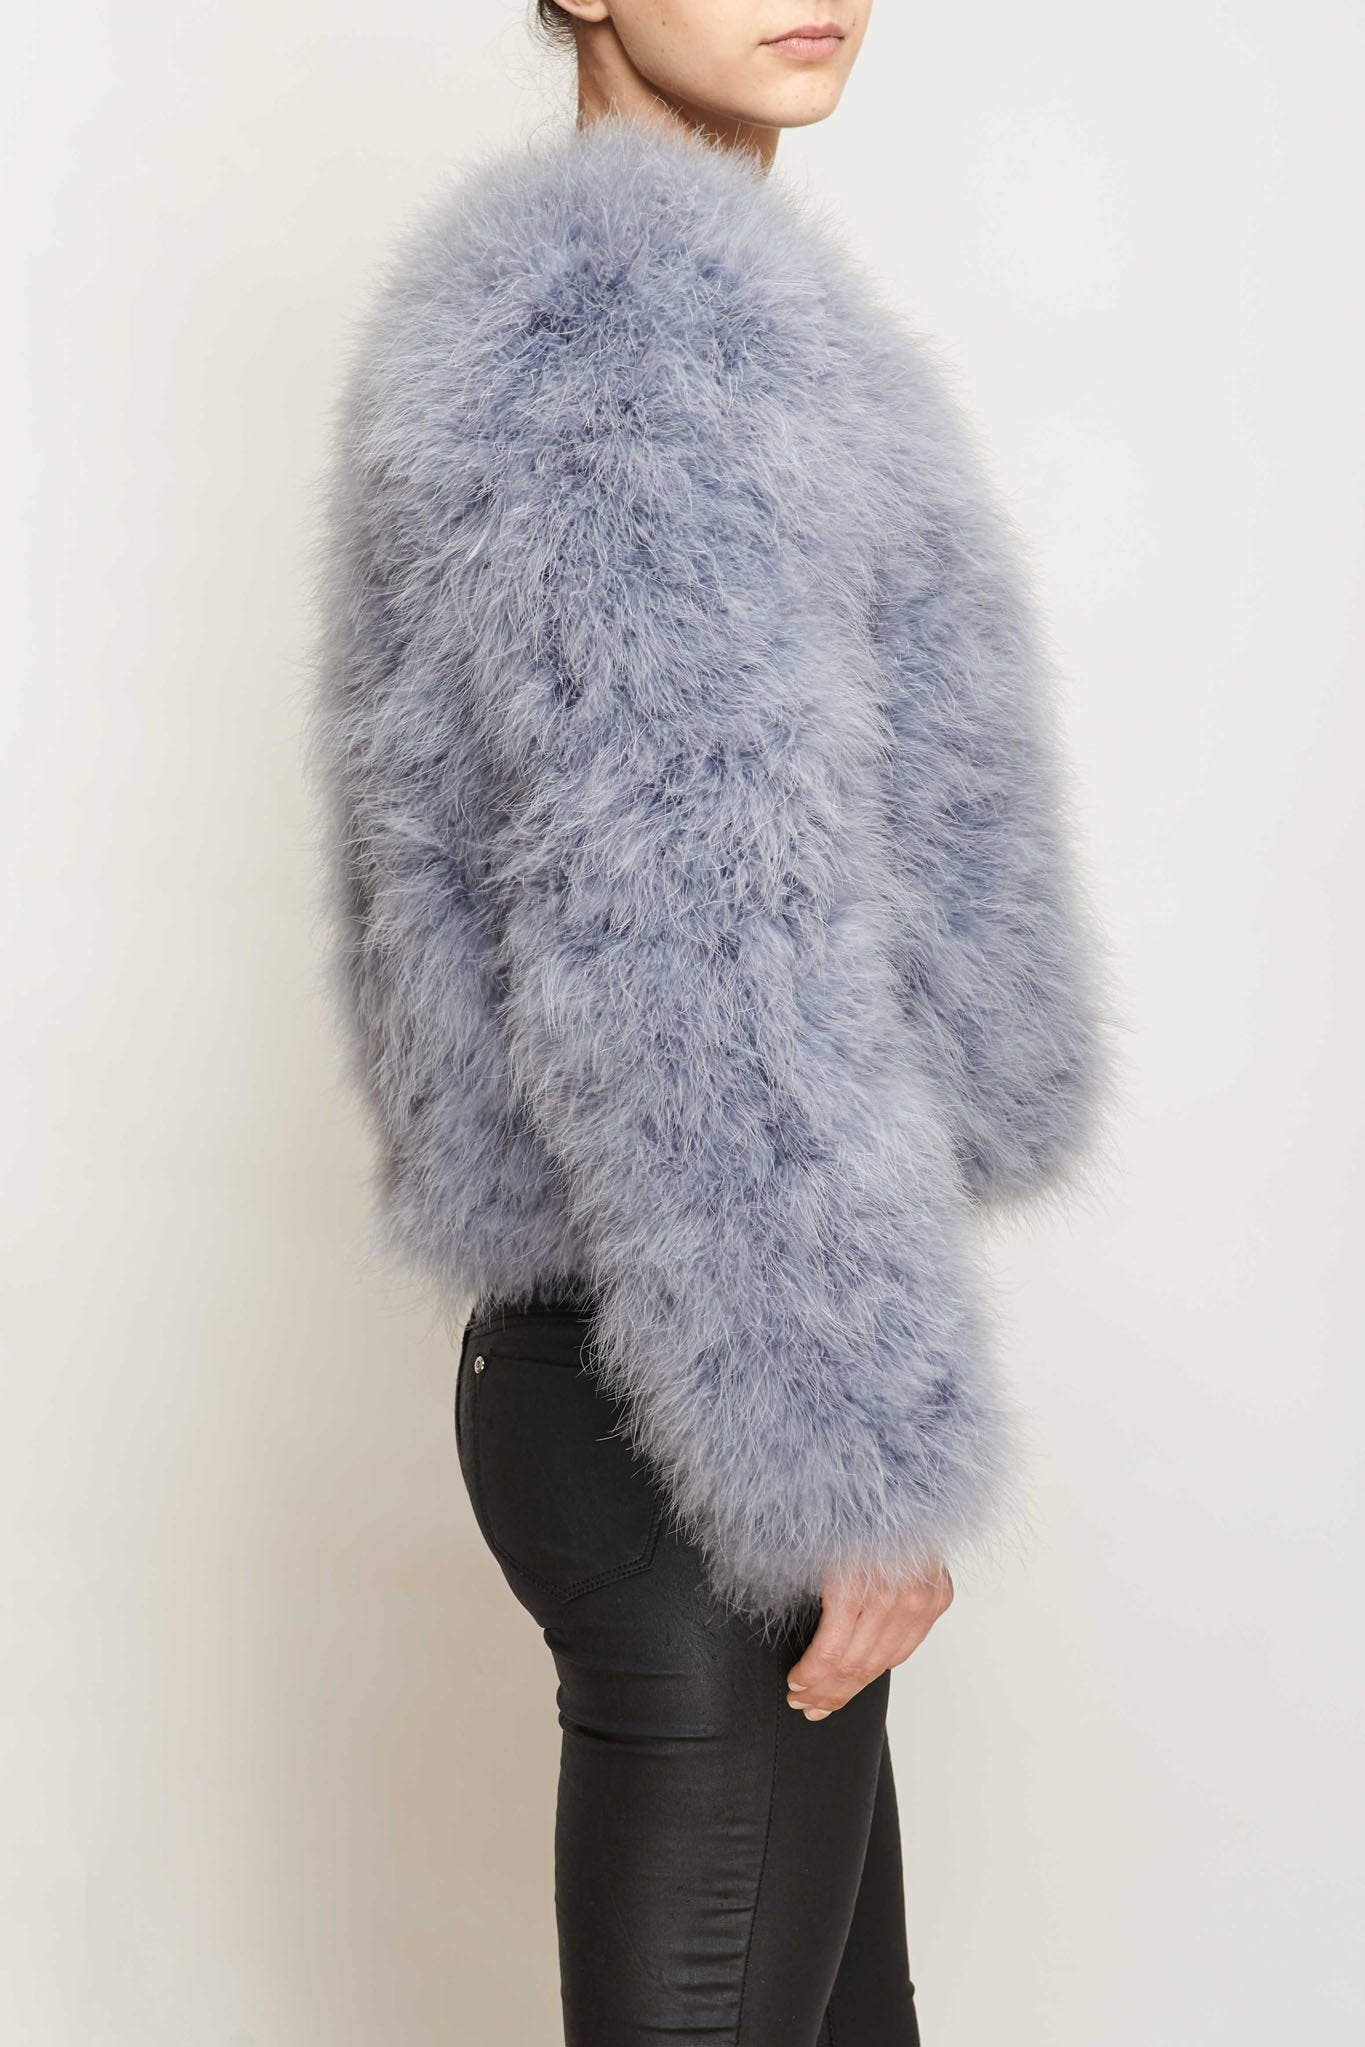 Glamorous Feather Coat - Gissings Boutique